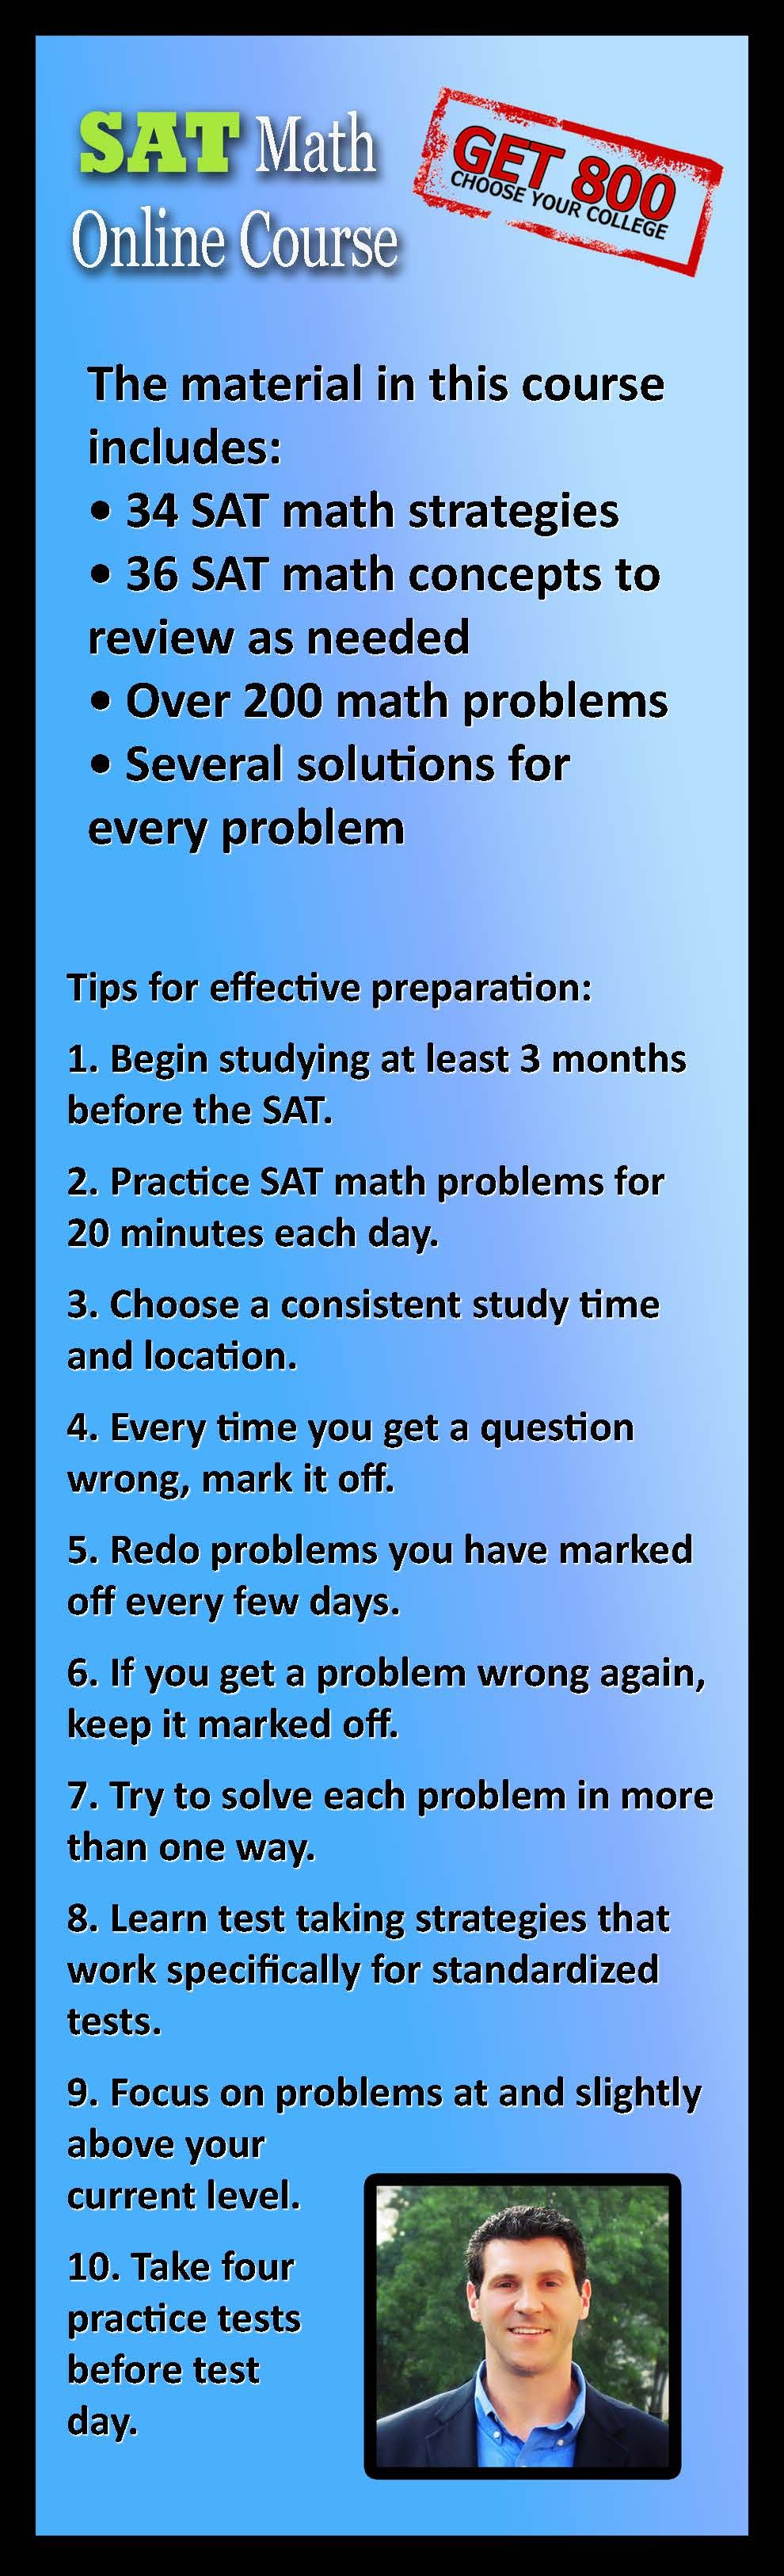 The Get 800 SAT Math Prep Online Course. Created by Dr. Steve Warner ...